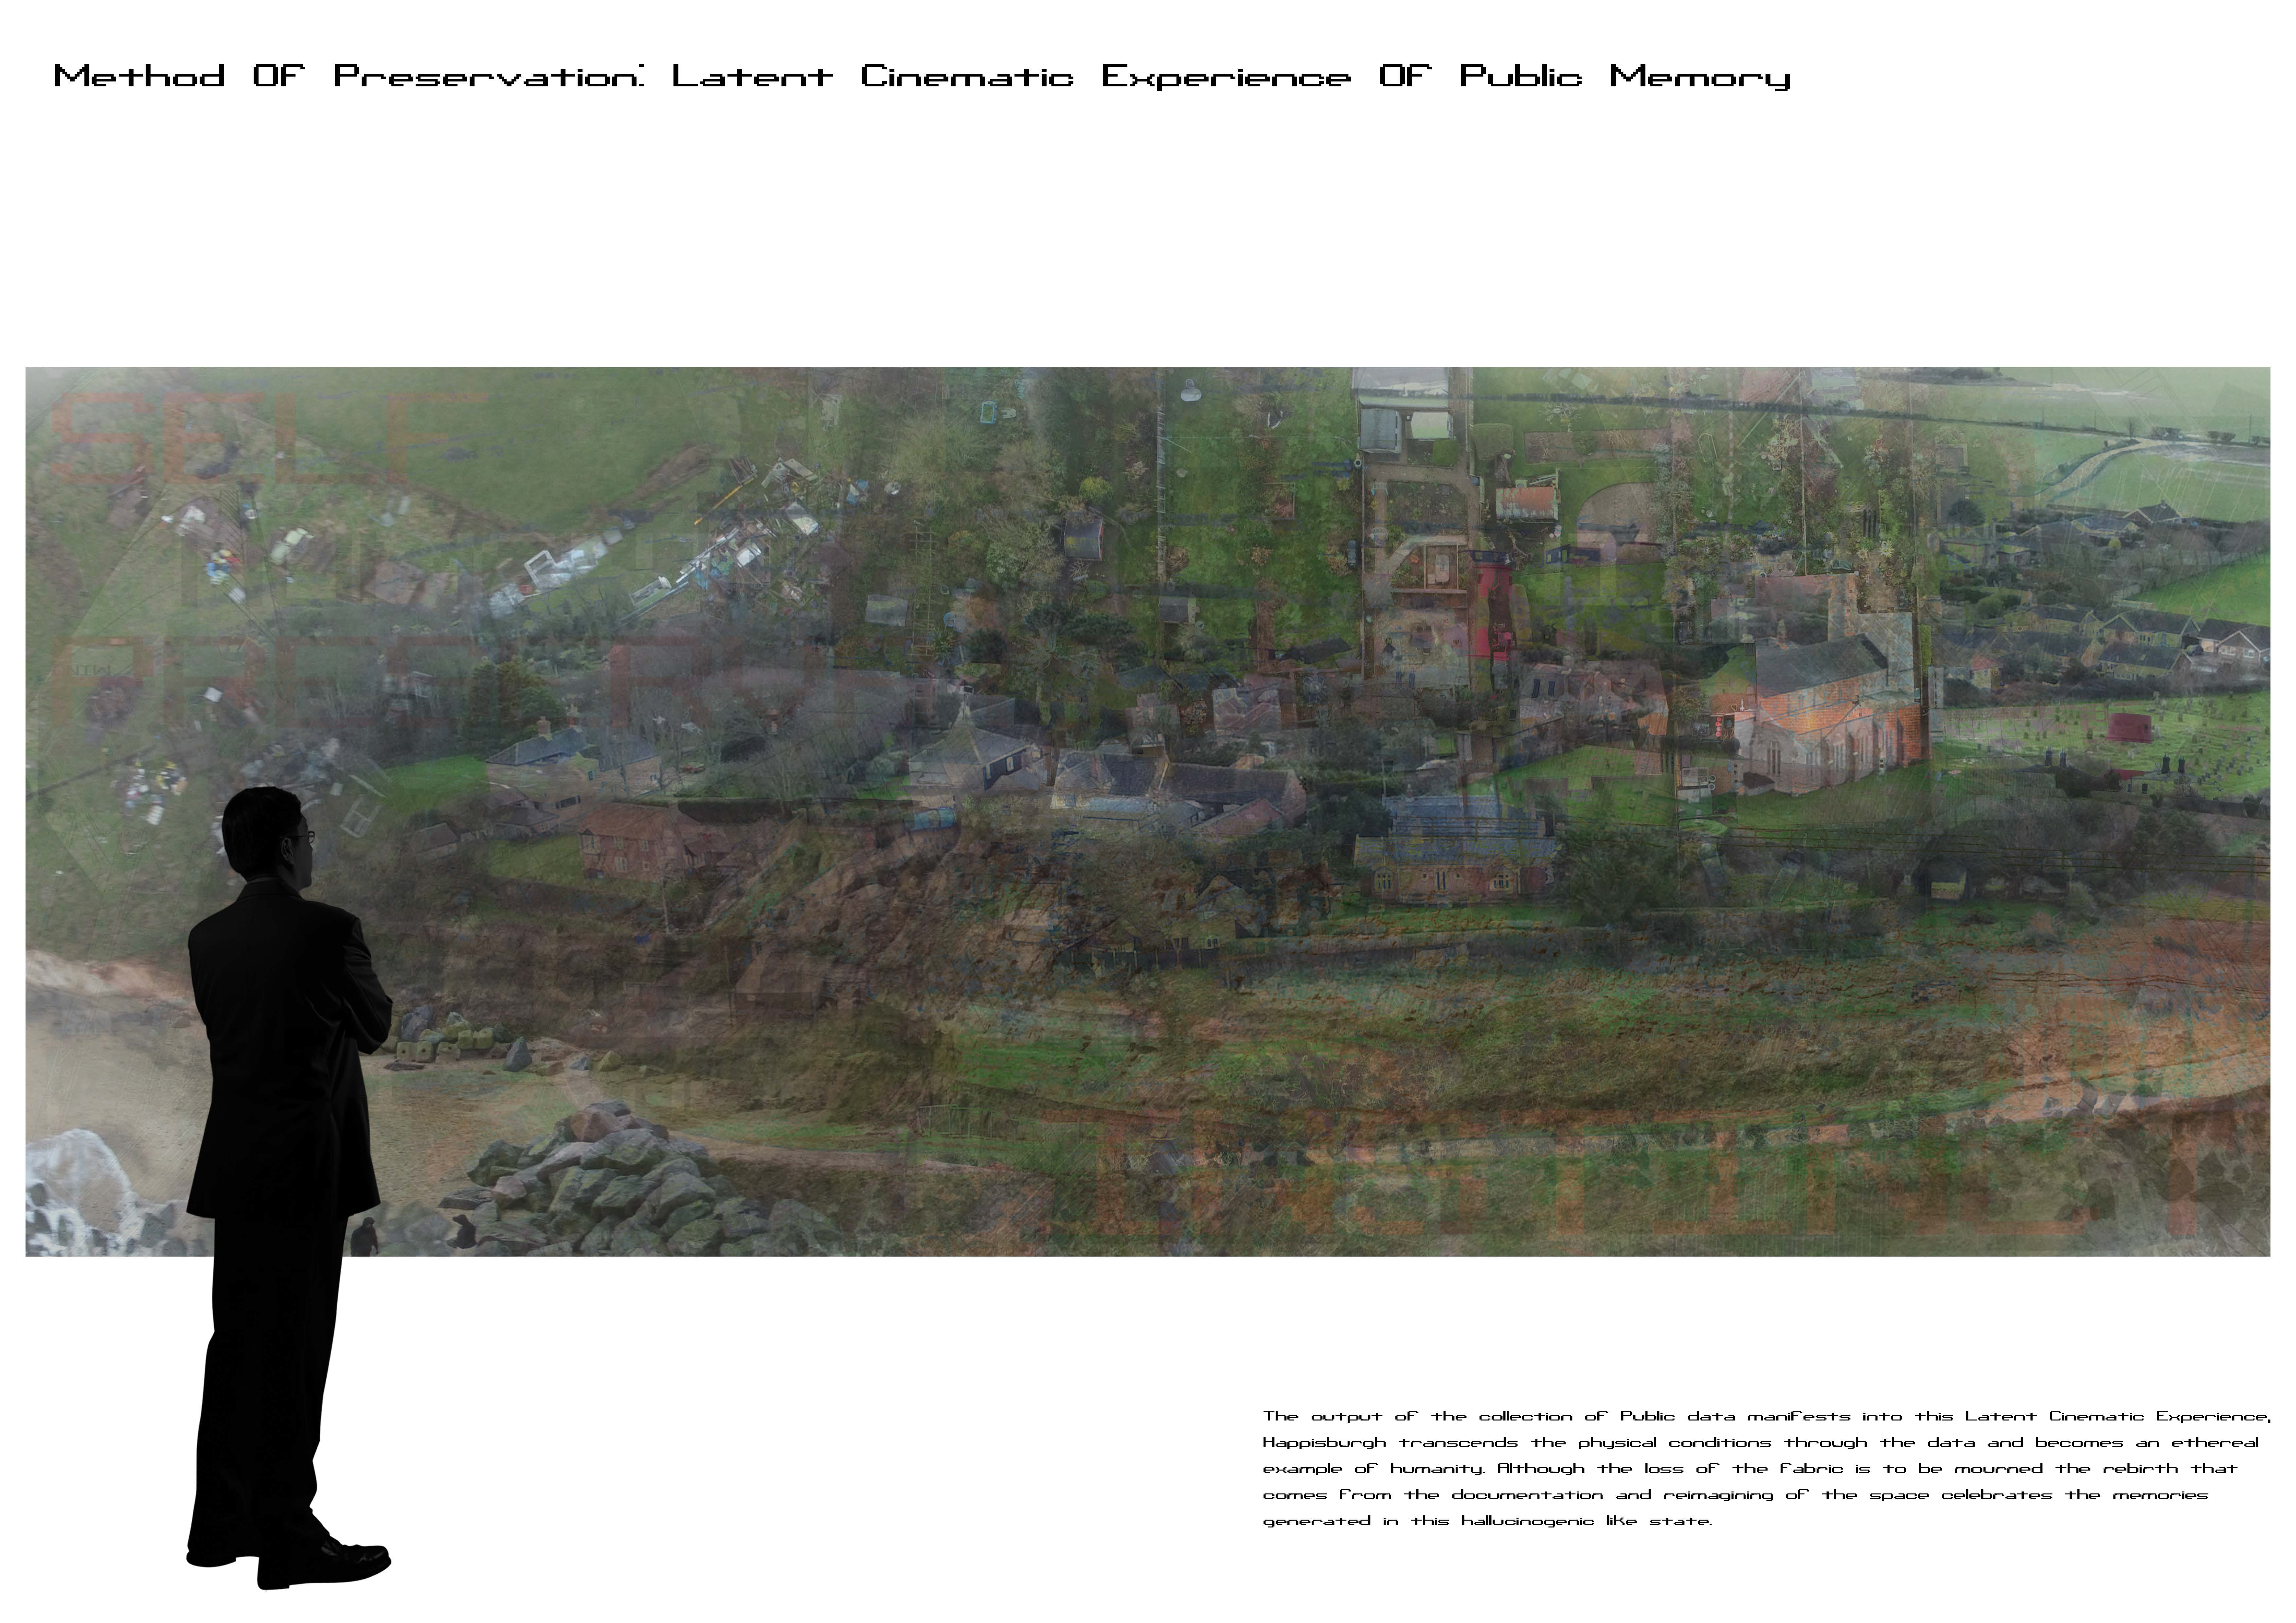 Method of Preservation: Latent Cinematic Experience of Public Memory